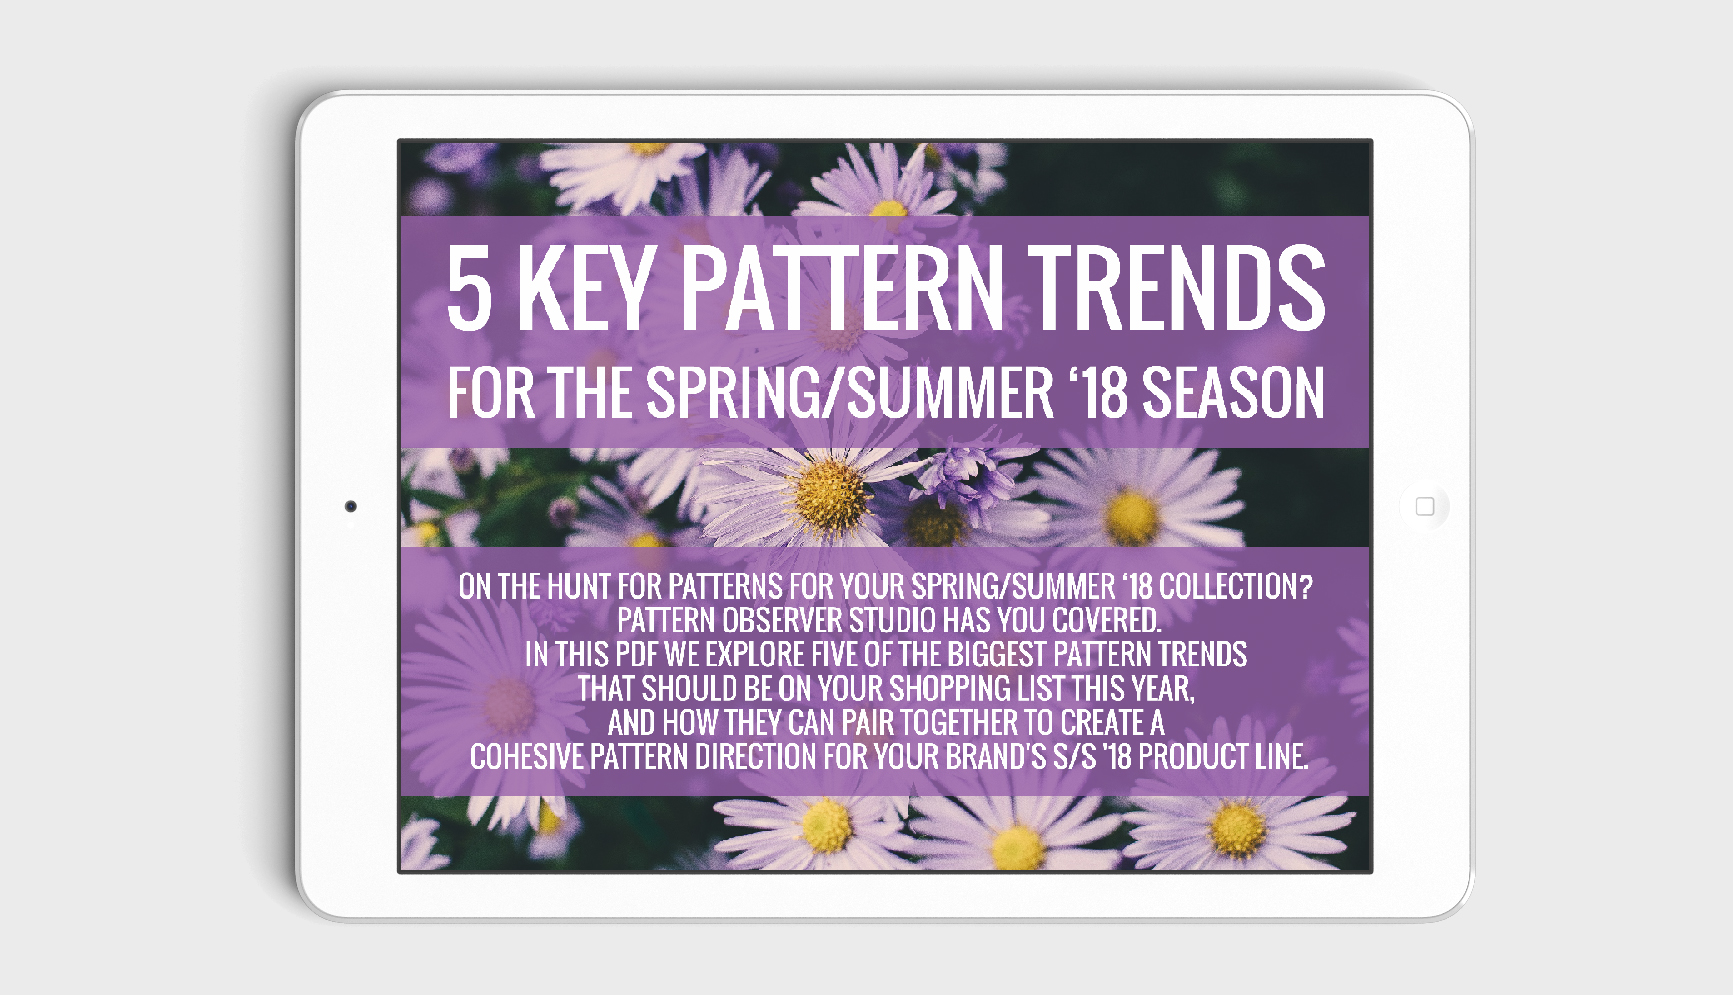 5 Key Pattern Trends for the Spring/Summer '18 Season